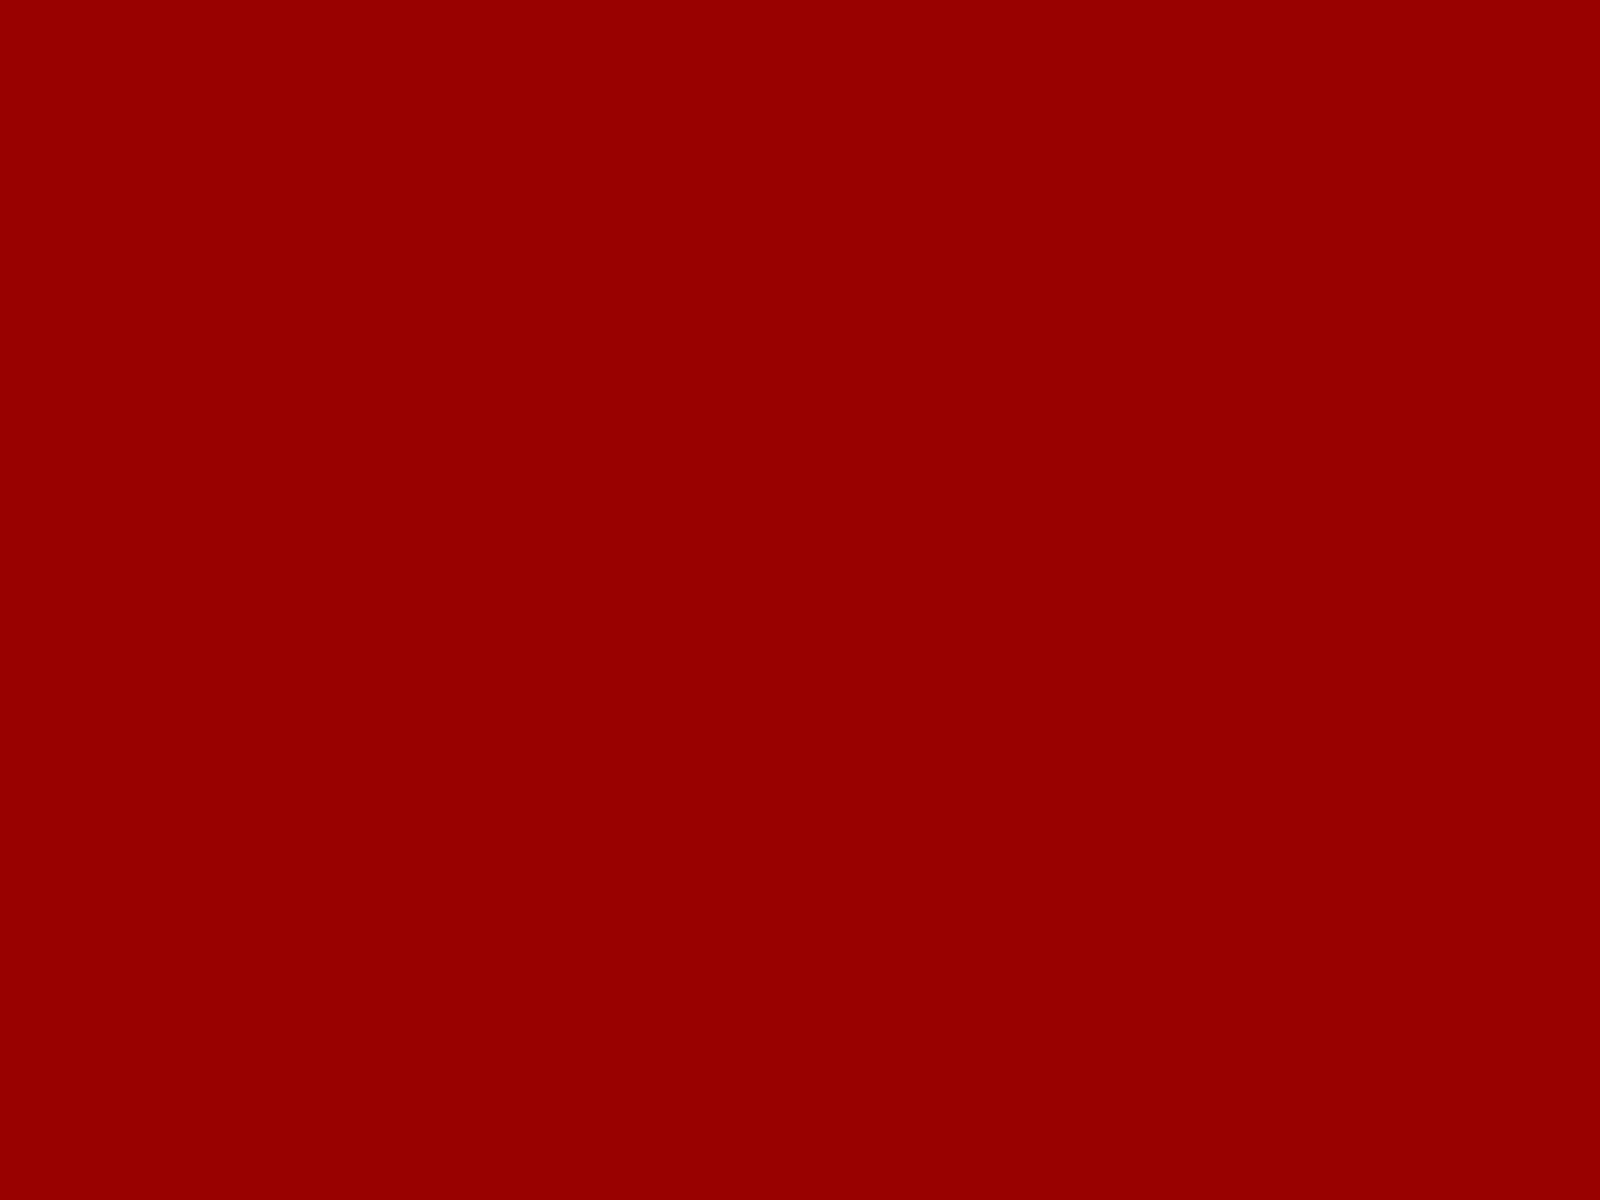 1600x1200 OU Crimson Red Solid Color Background